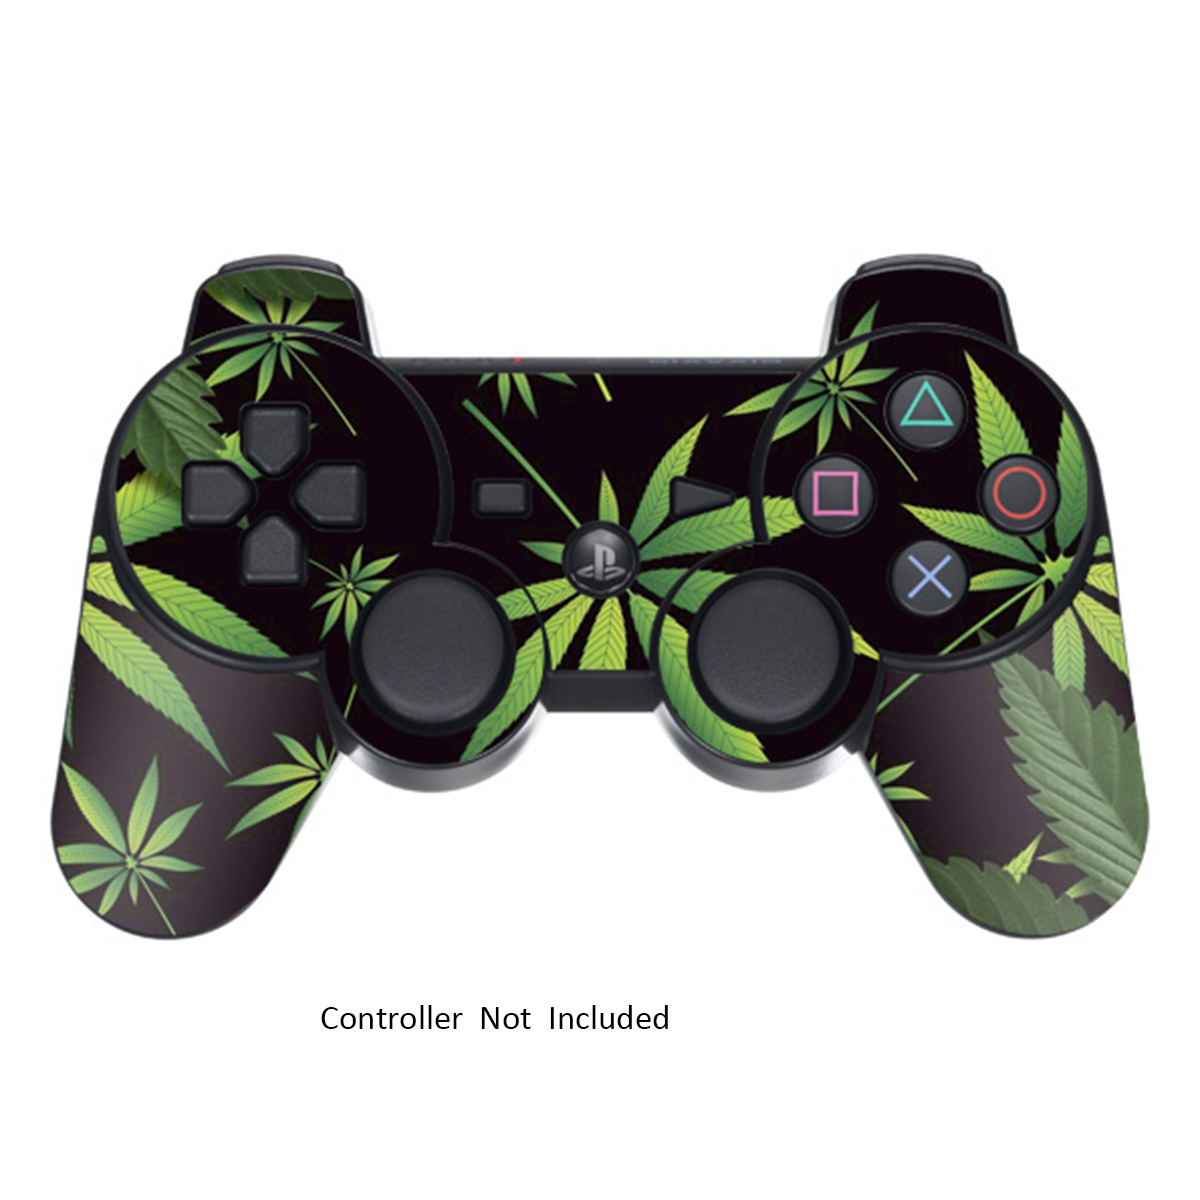 Skin Stickers for Playstation 3 Controller - Vinyl Sticker for DualShock 3 Wireless Game PS3 Sixaxis Controllers - Protectors Sticker Controller Decal Weeds Black